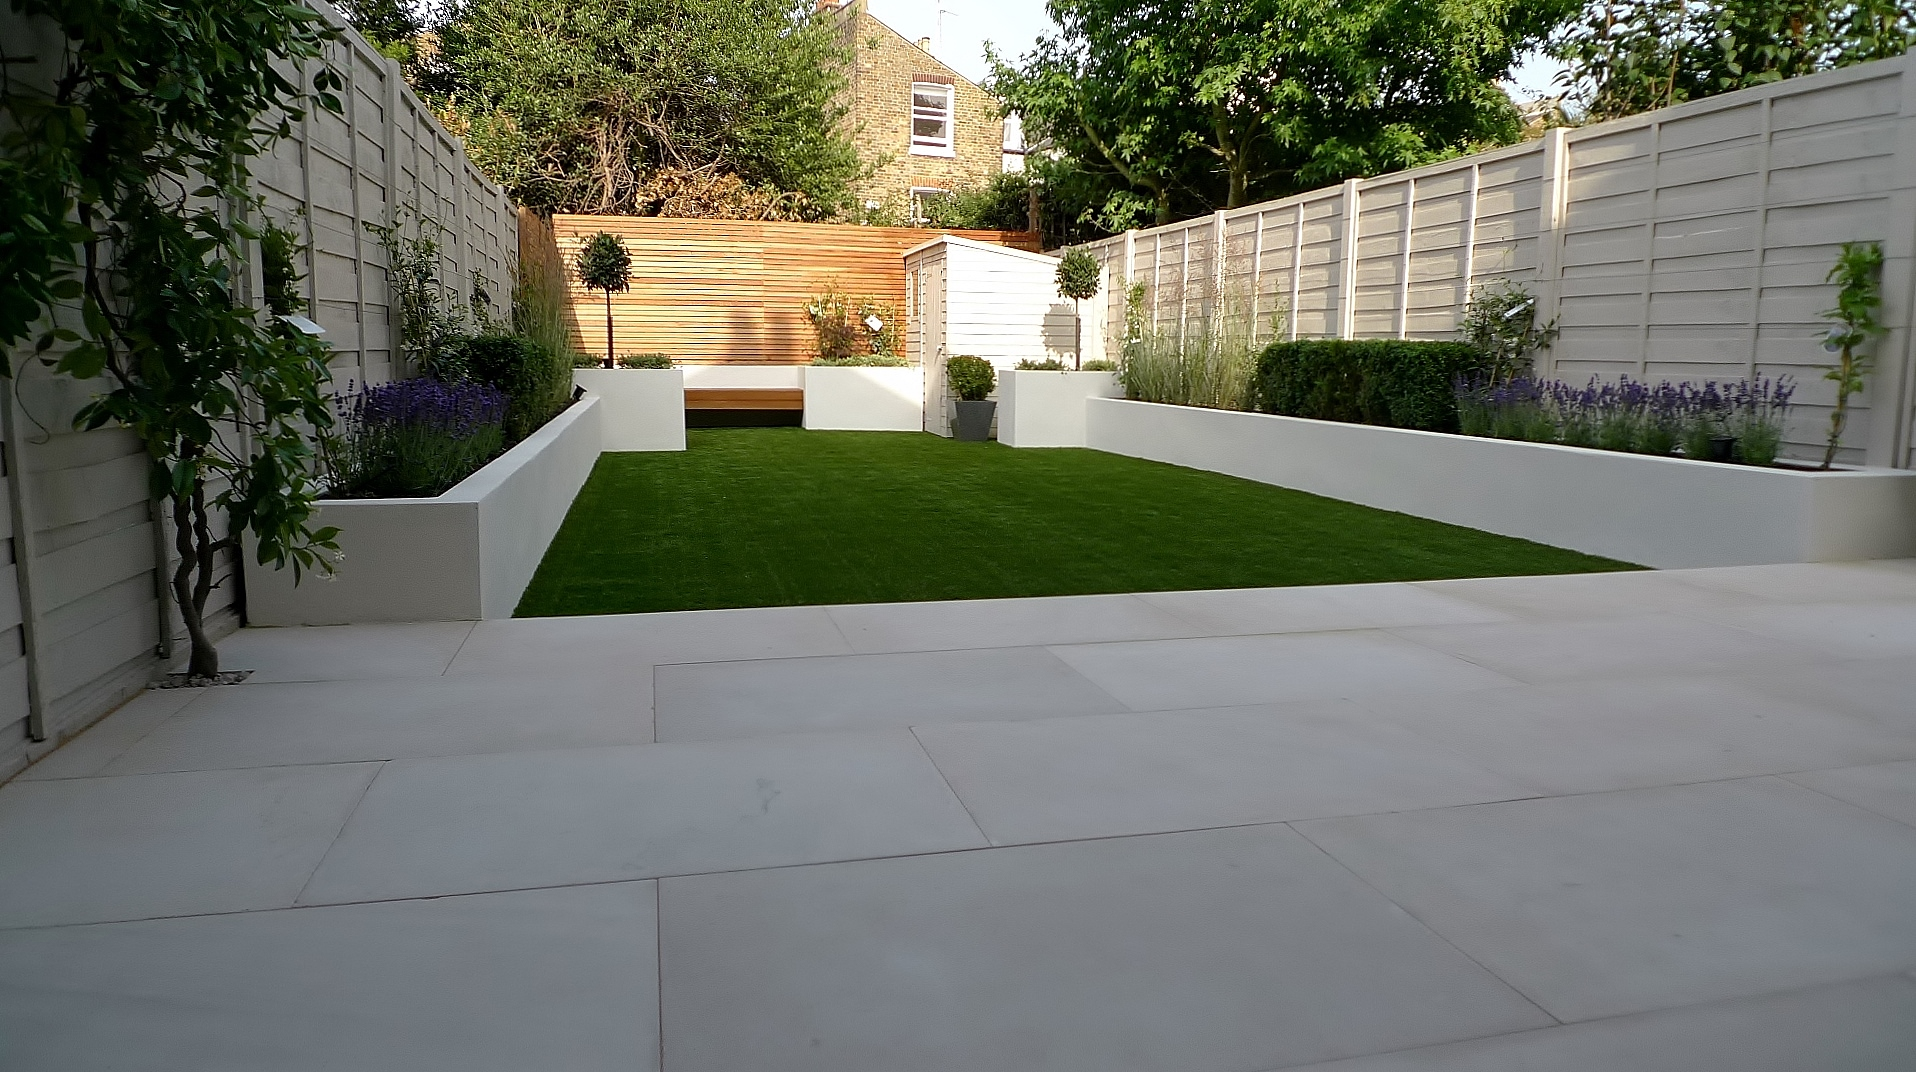 Anewgarden london garden blog for Small patio remodel ideas